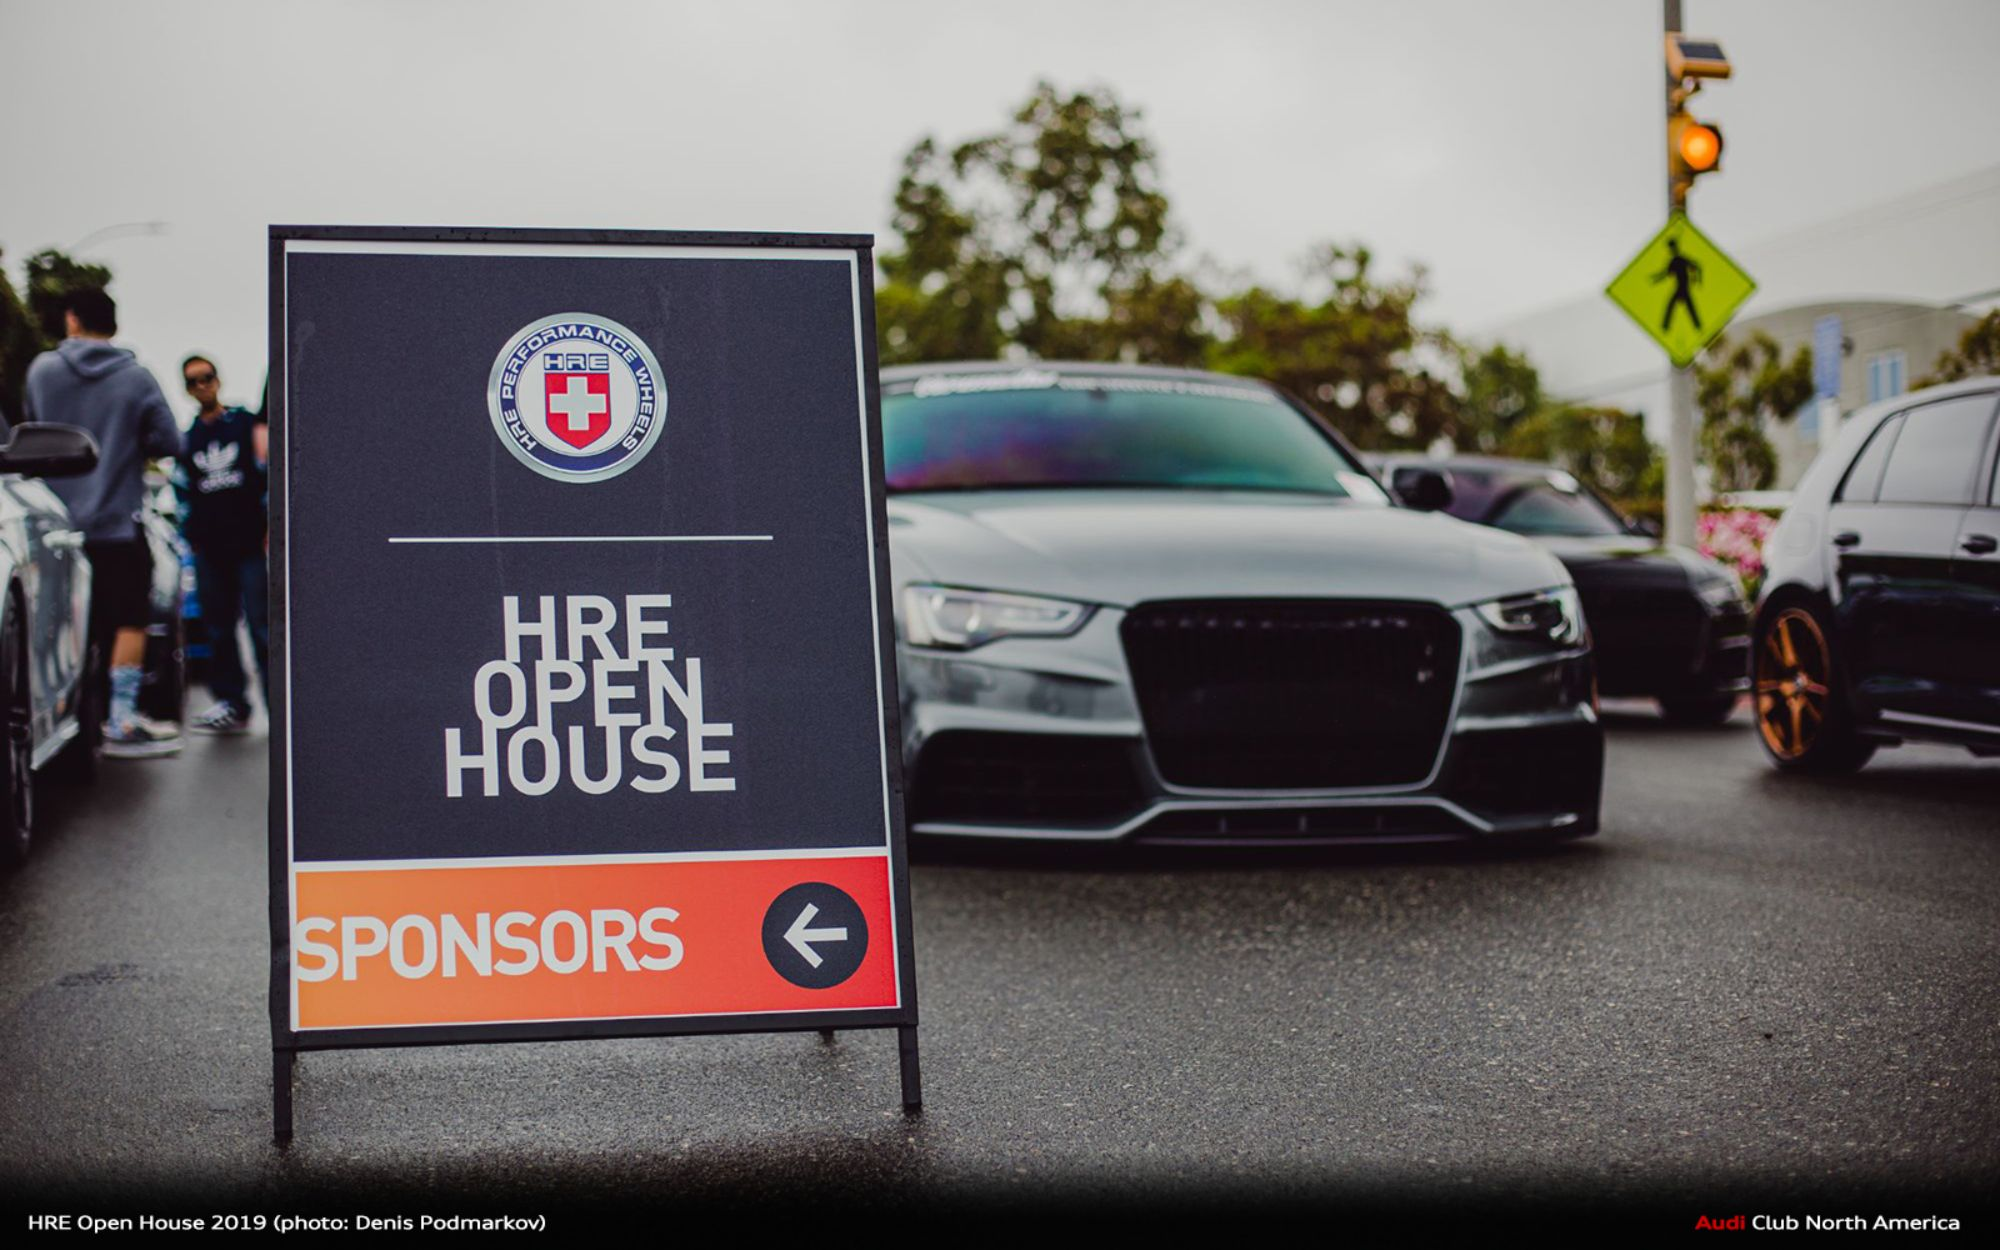 quattro Magazine q4_2019: Event Report – HRE Open House 2019